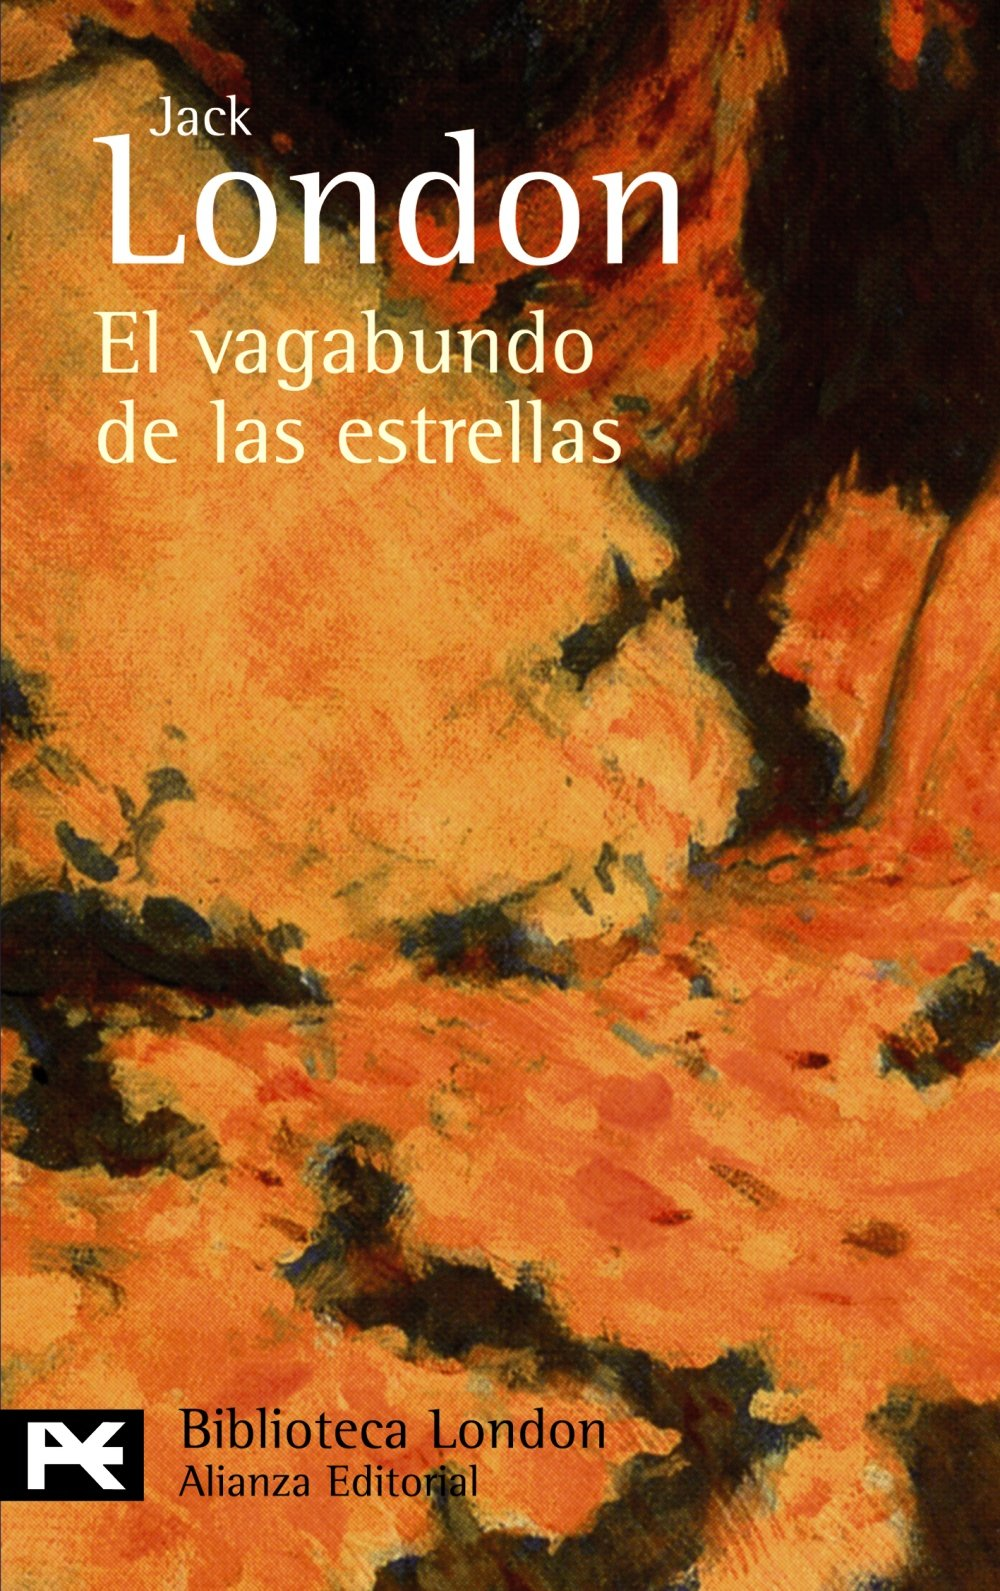 Download El vagabundo de las estrellas / The tramp of the stars (El Libro De Bolsillo-bibliotecas De Autor-biblioteca London) (Spanish Edition) pdf